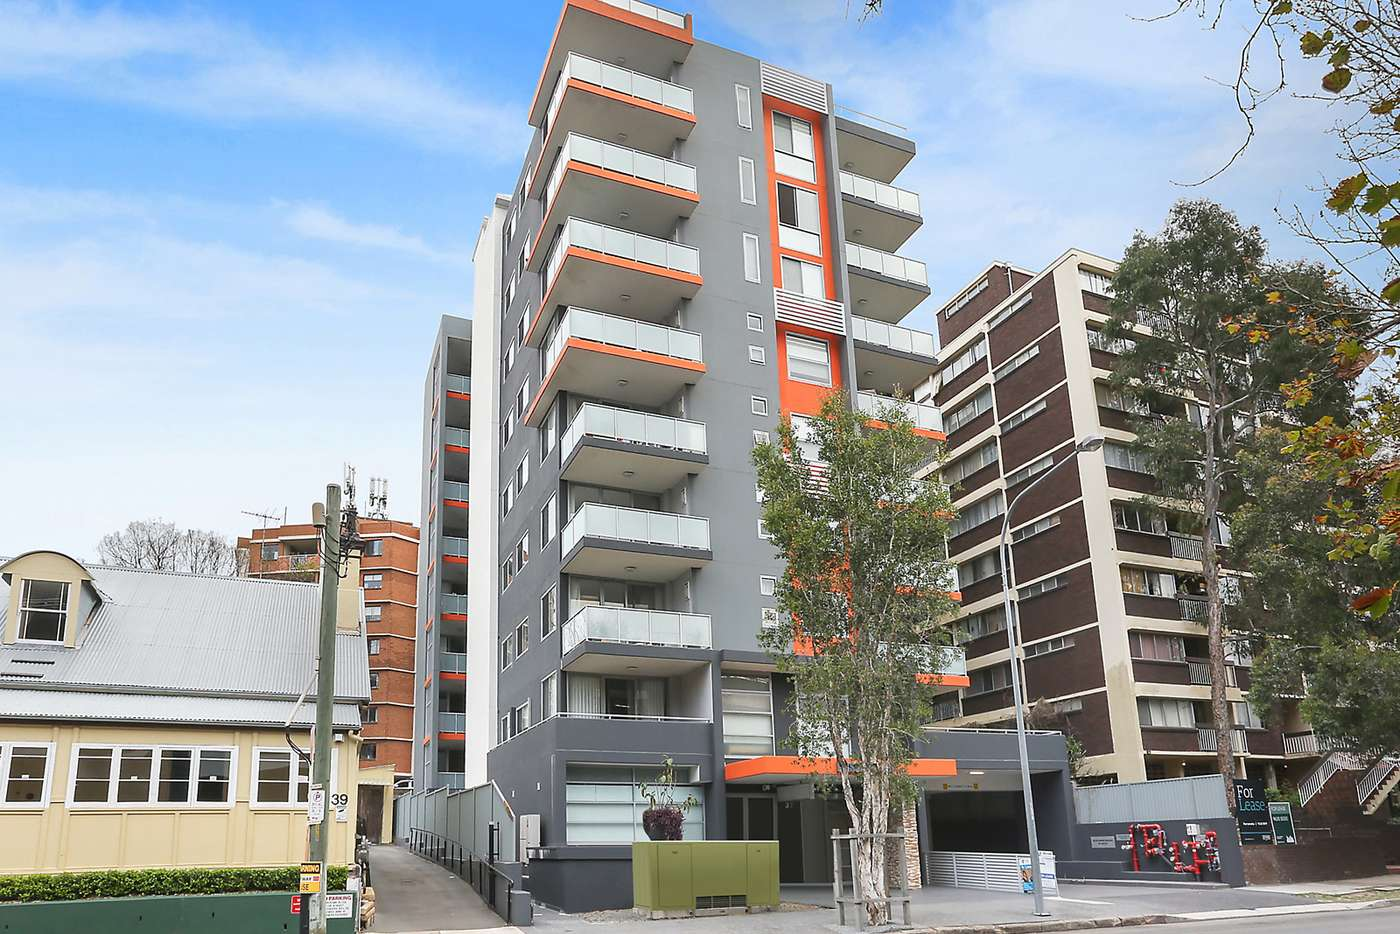 Main view of Homely apartment listing, 25/37 Campbell Street, Parramatta NSW 2150